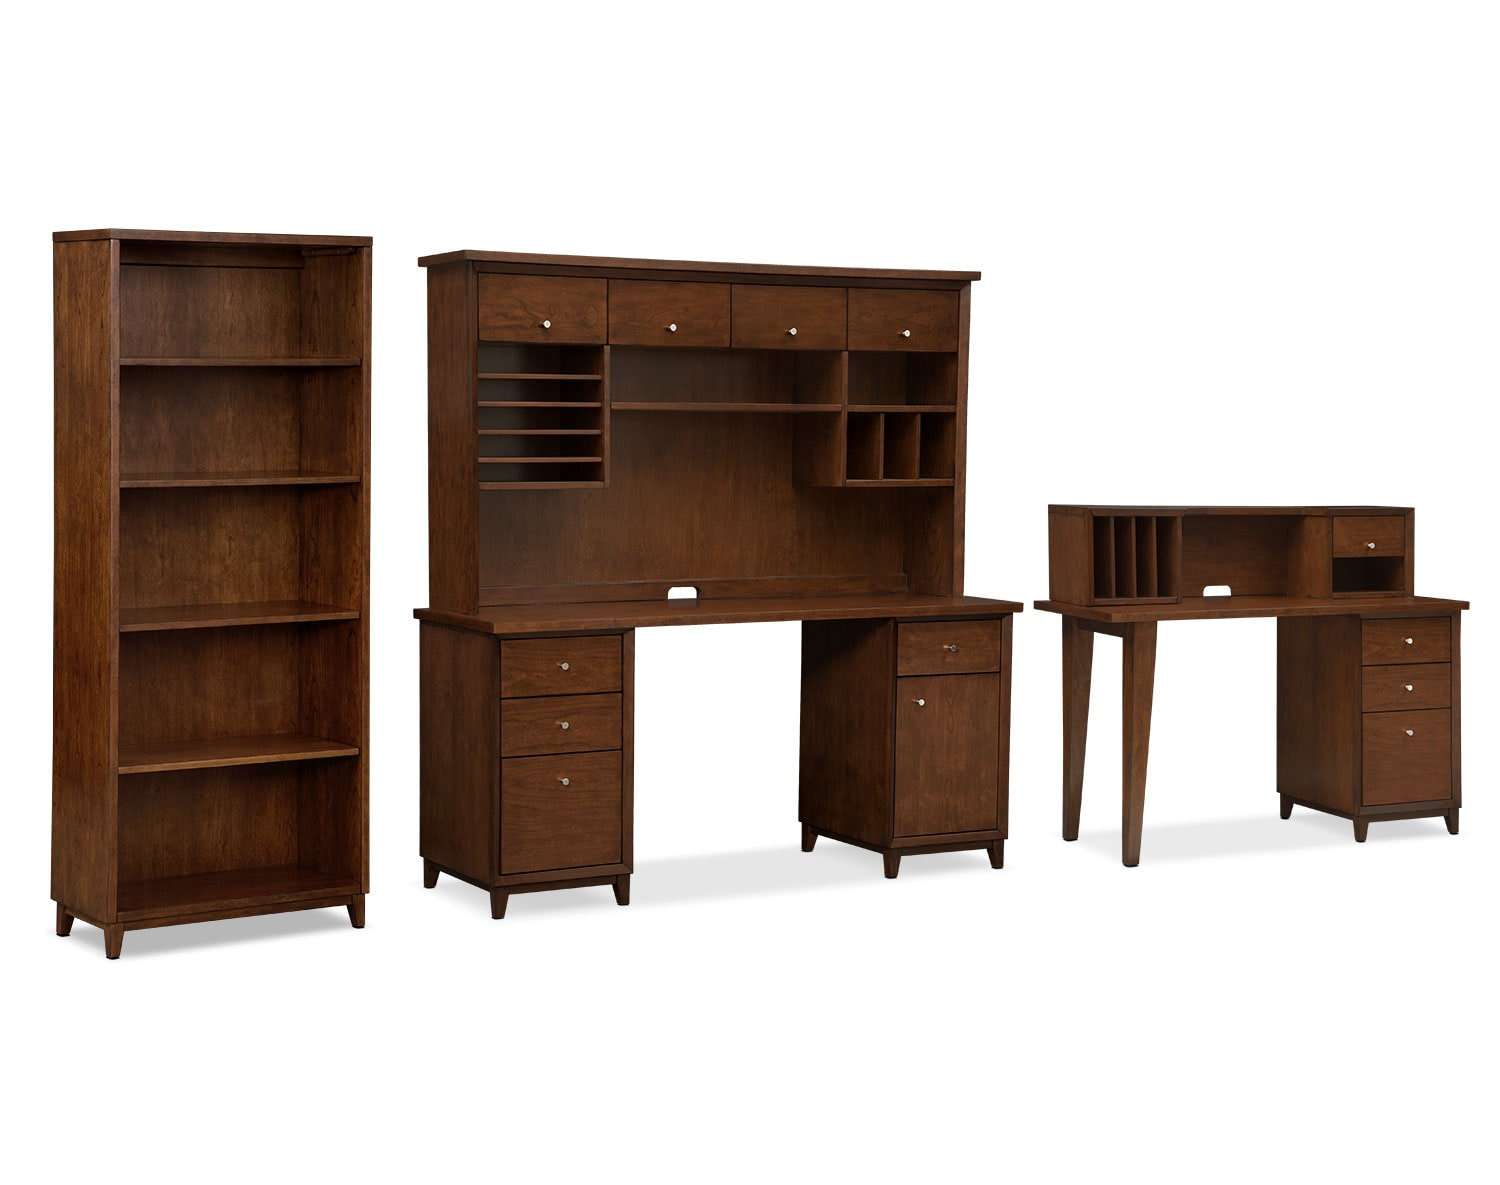 The Oslo Cherry Home Office Collection